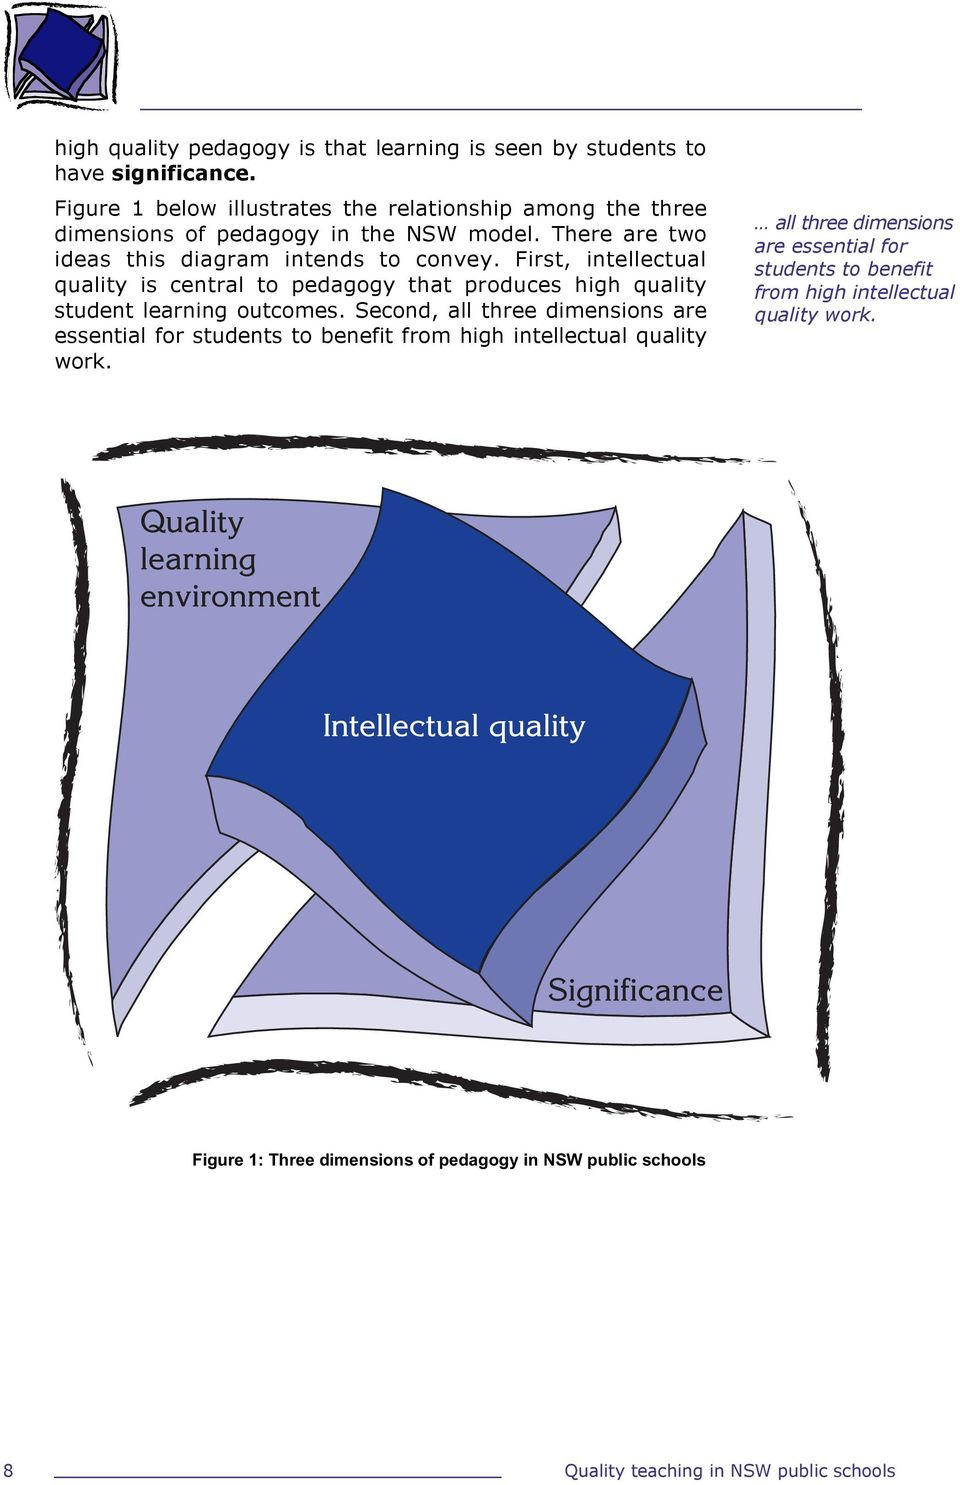 First, intellectual quality is central to pedagogy that produces high quality student learning outcomes.